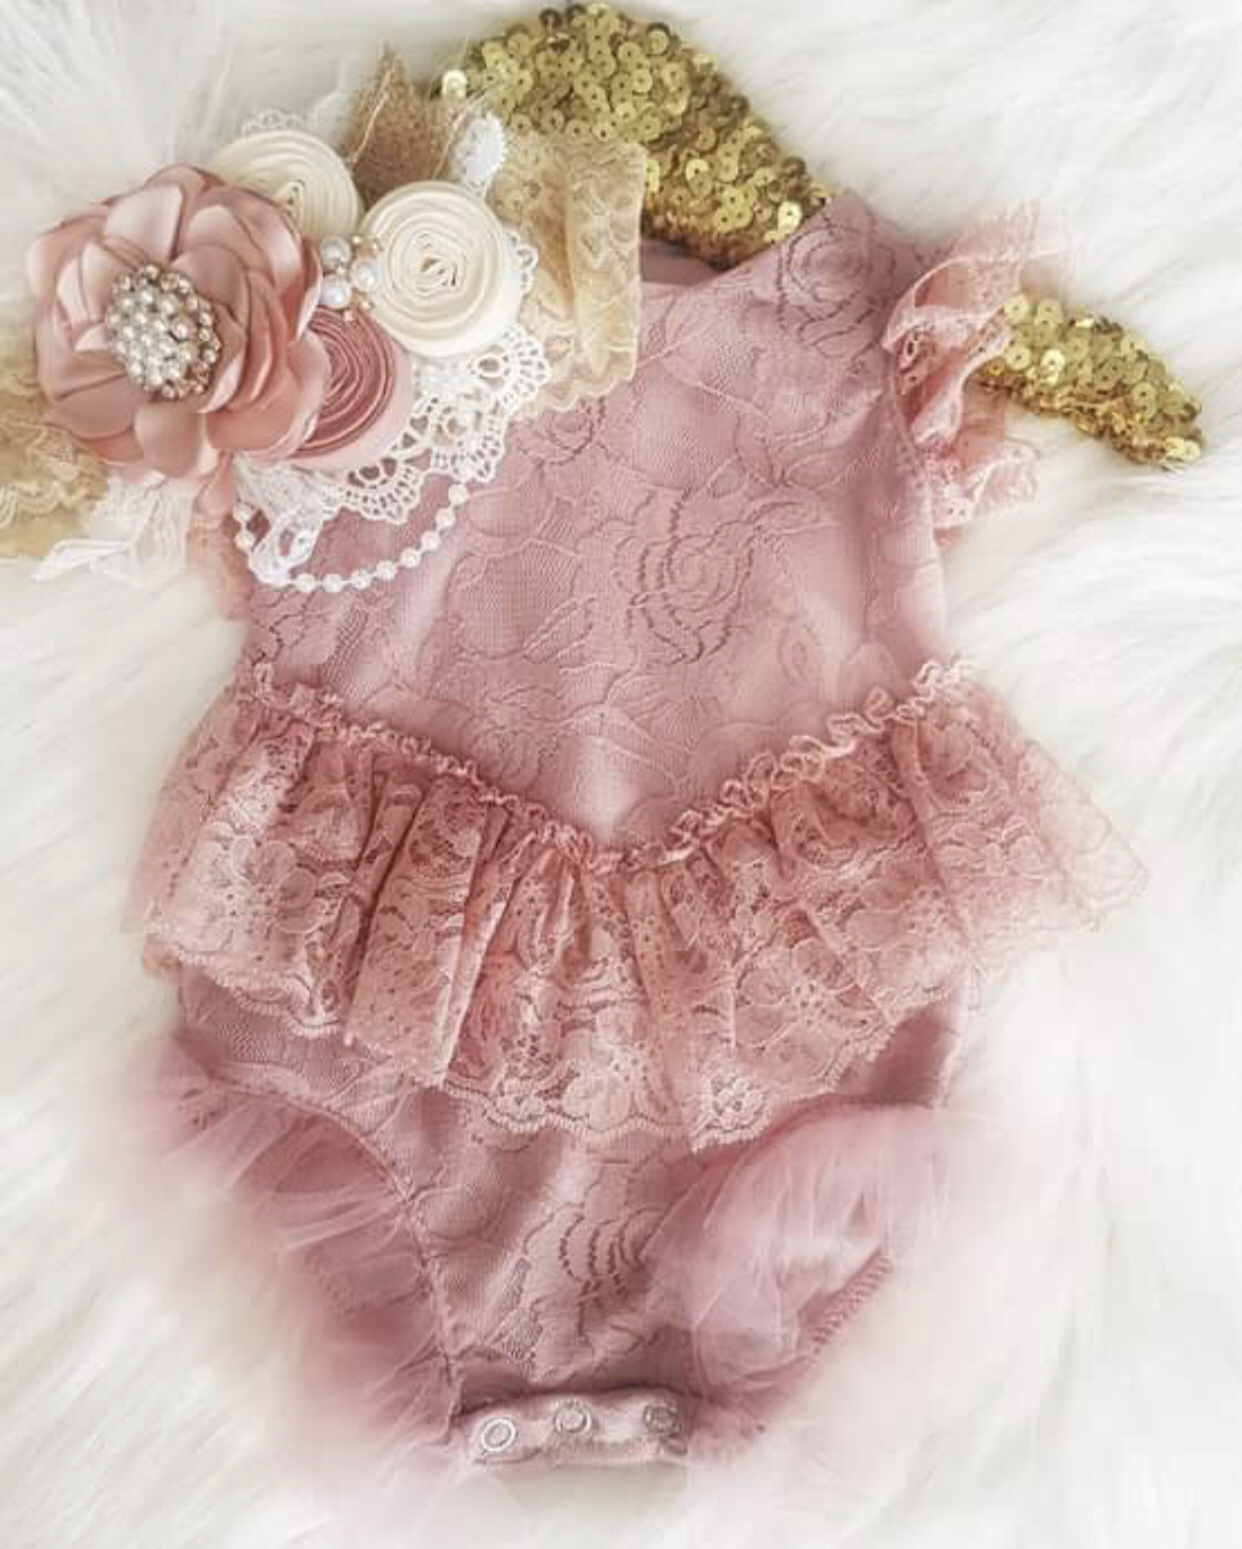 Clothing, Shoes & Accessories Vintage Pink Lace Overalls Sz 12 Months Flowers Lace One-pieces